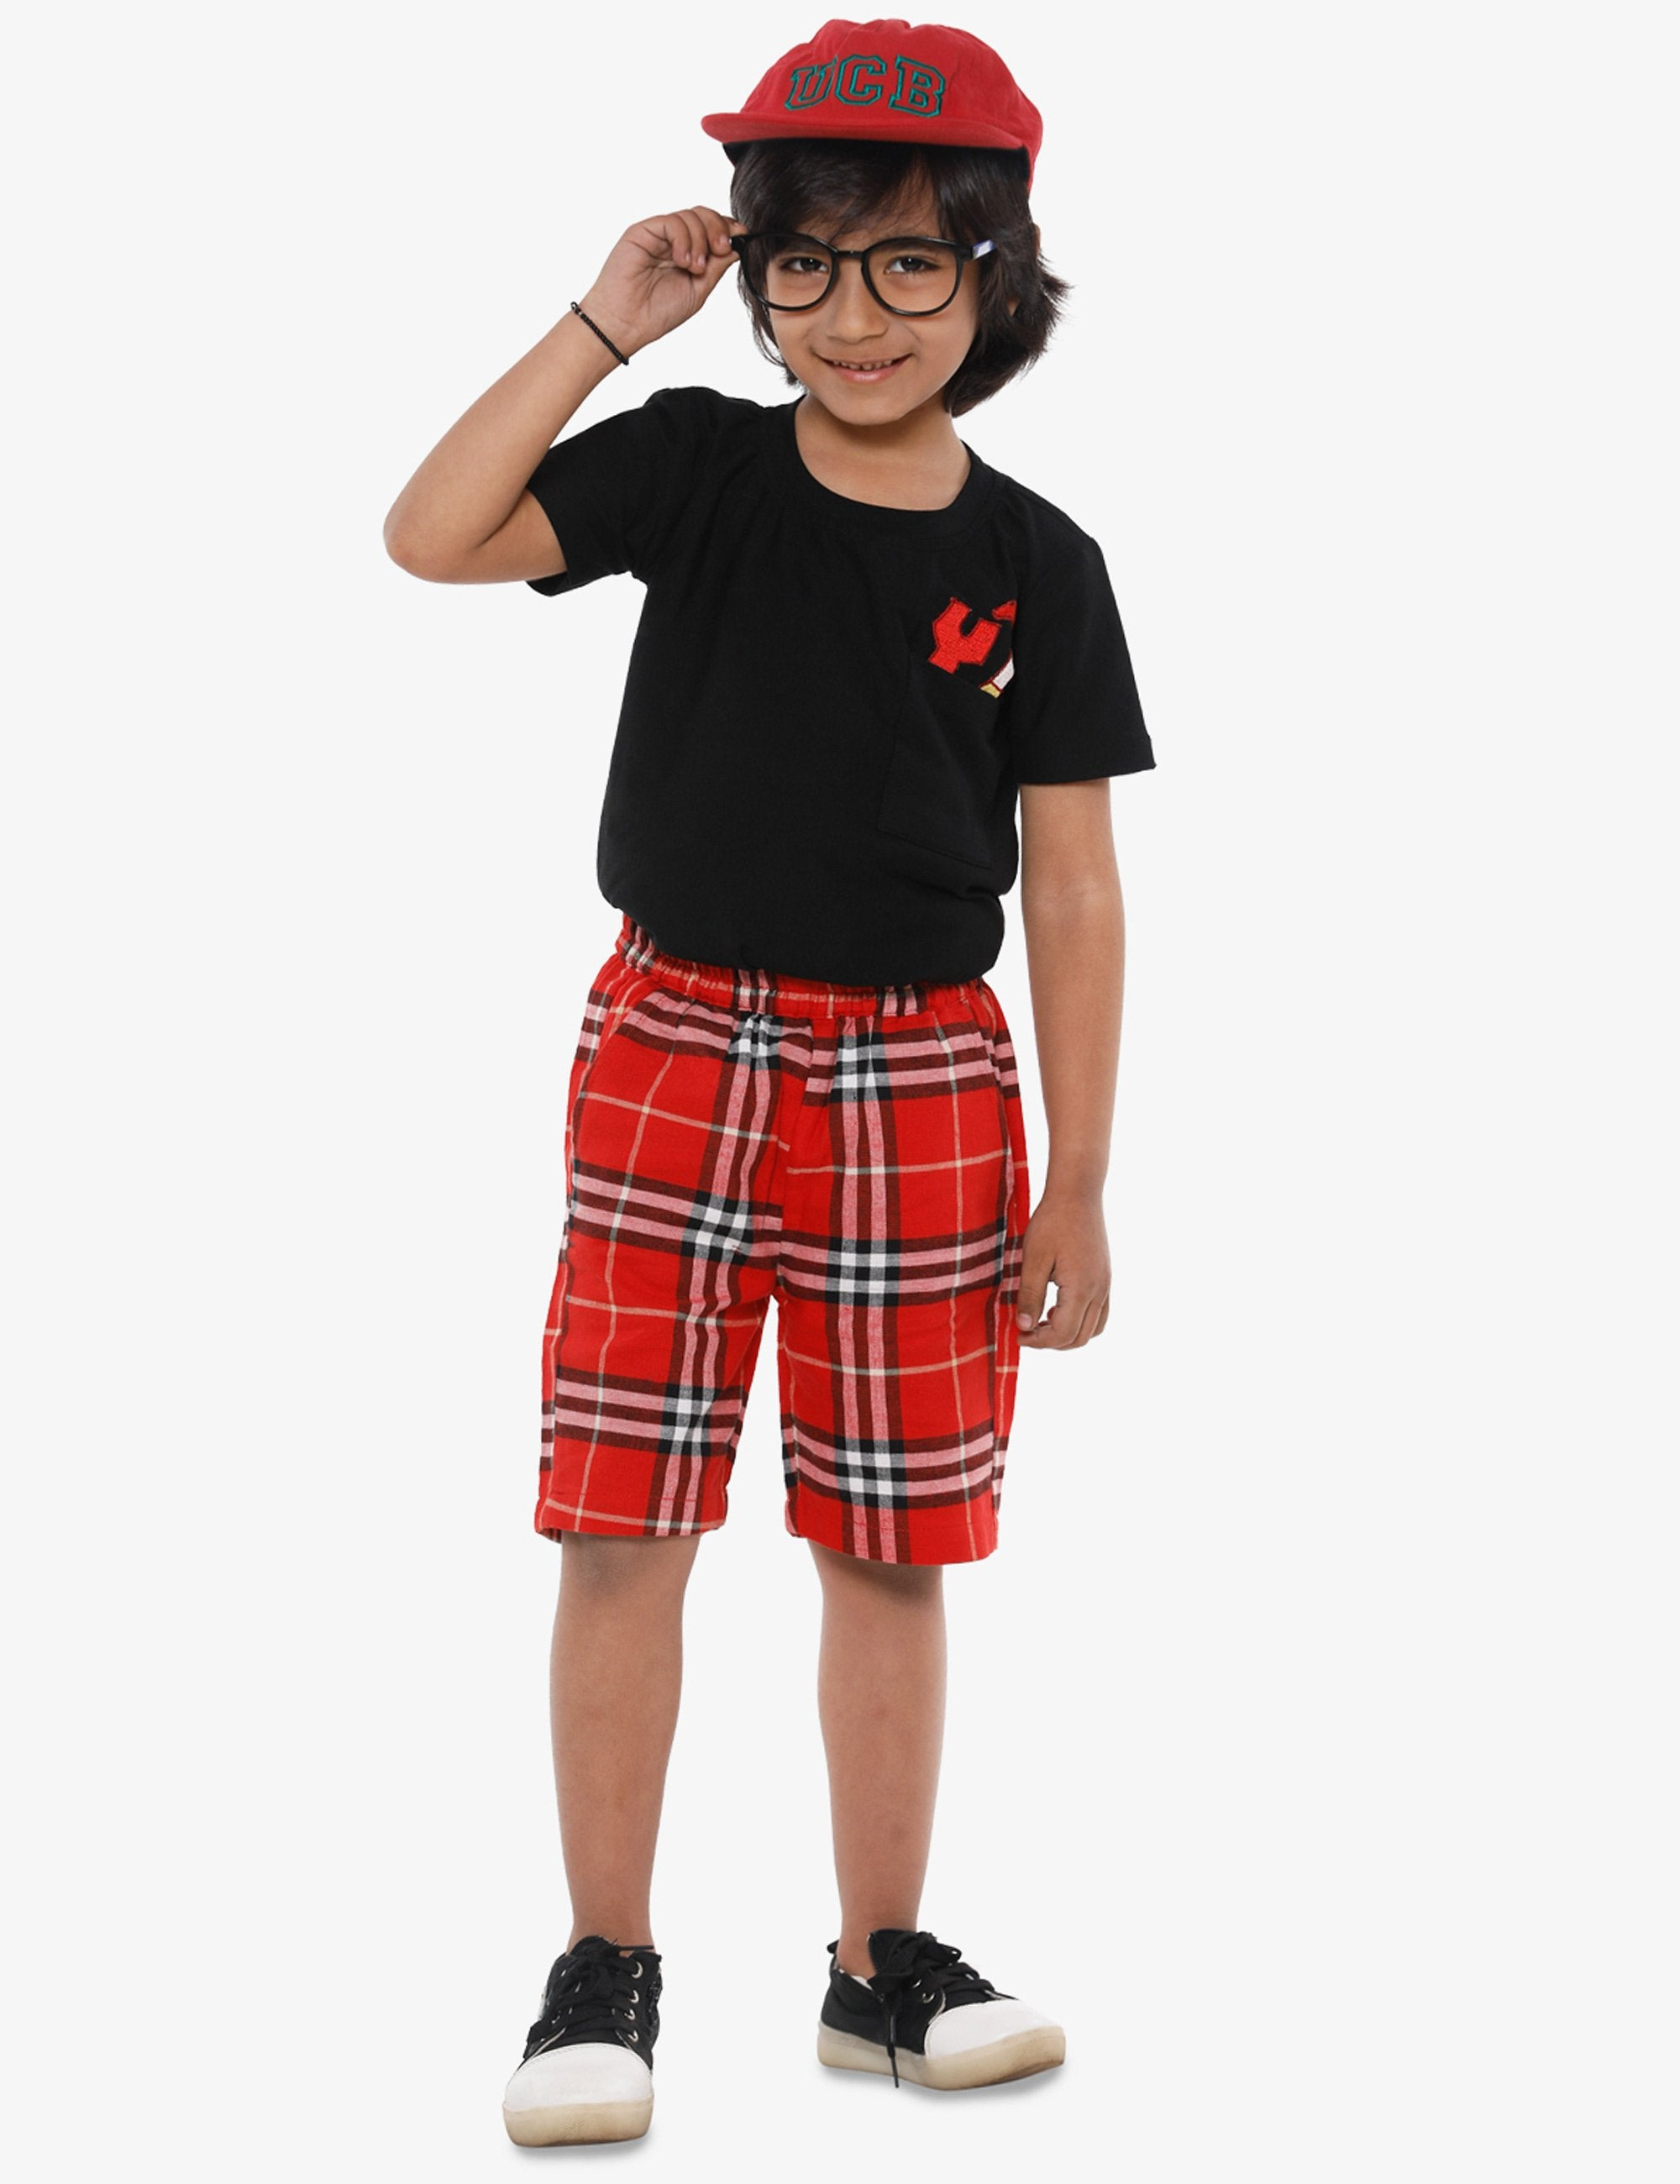 Black Tools Pocket Tshirt and Red Shorts Set .